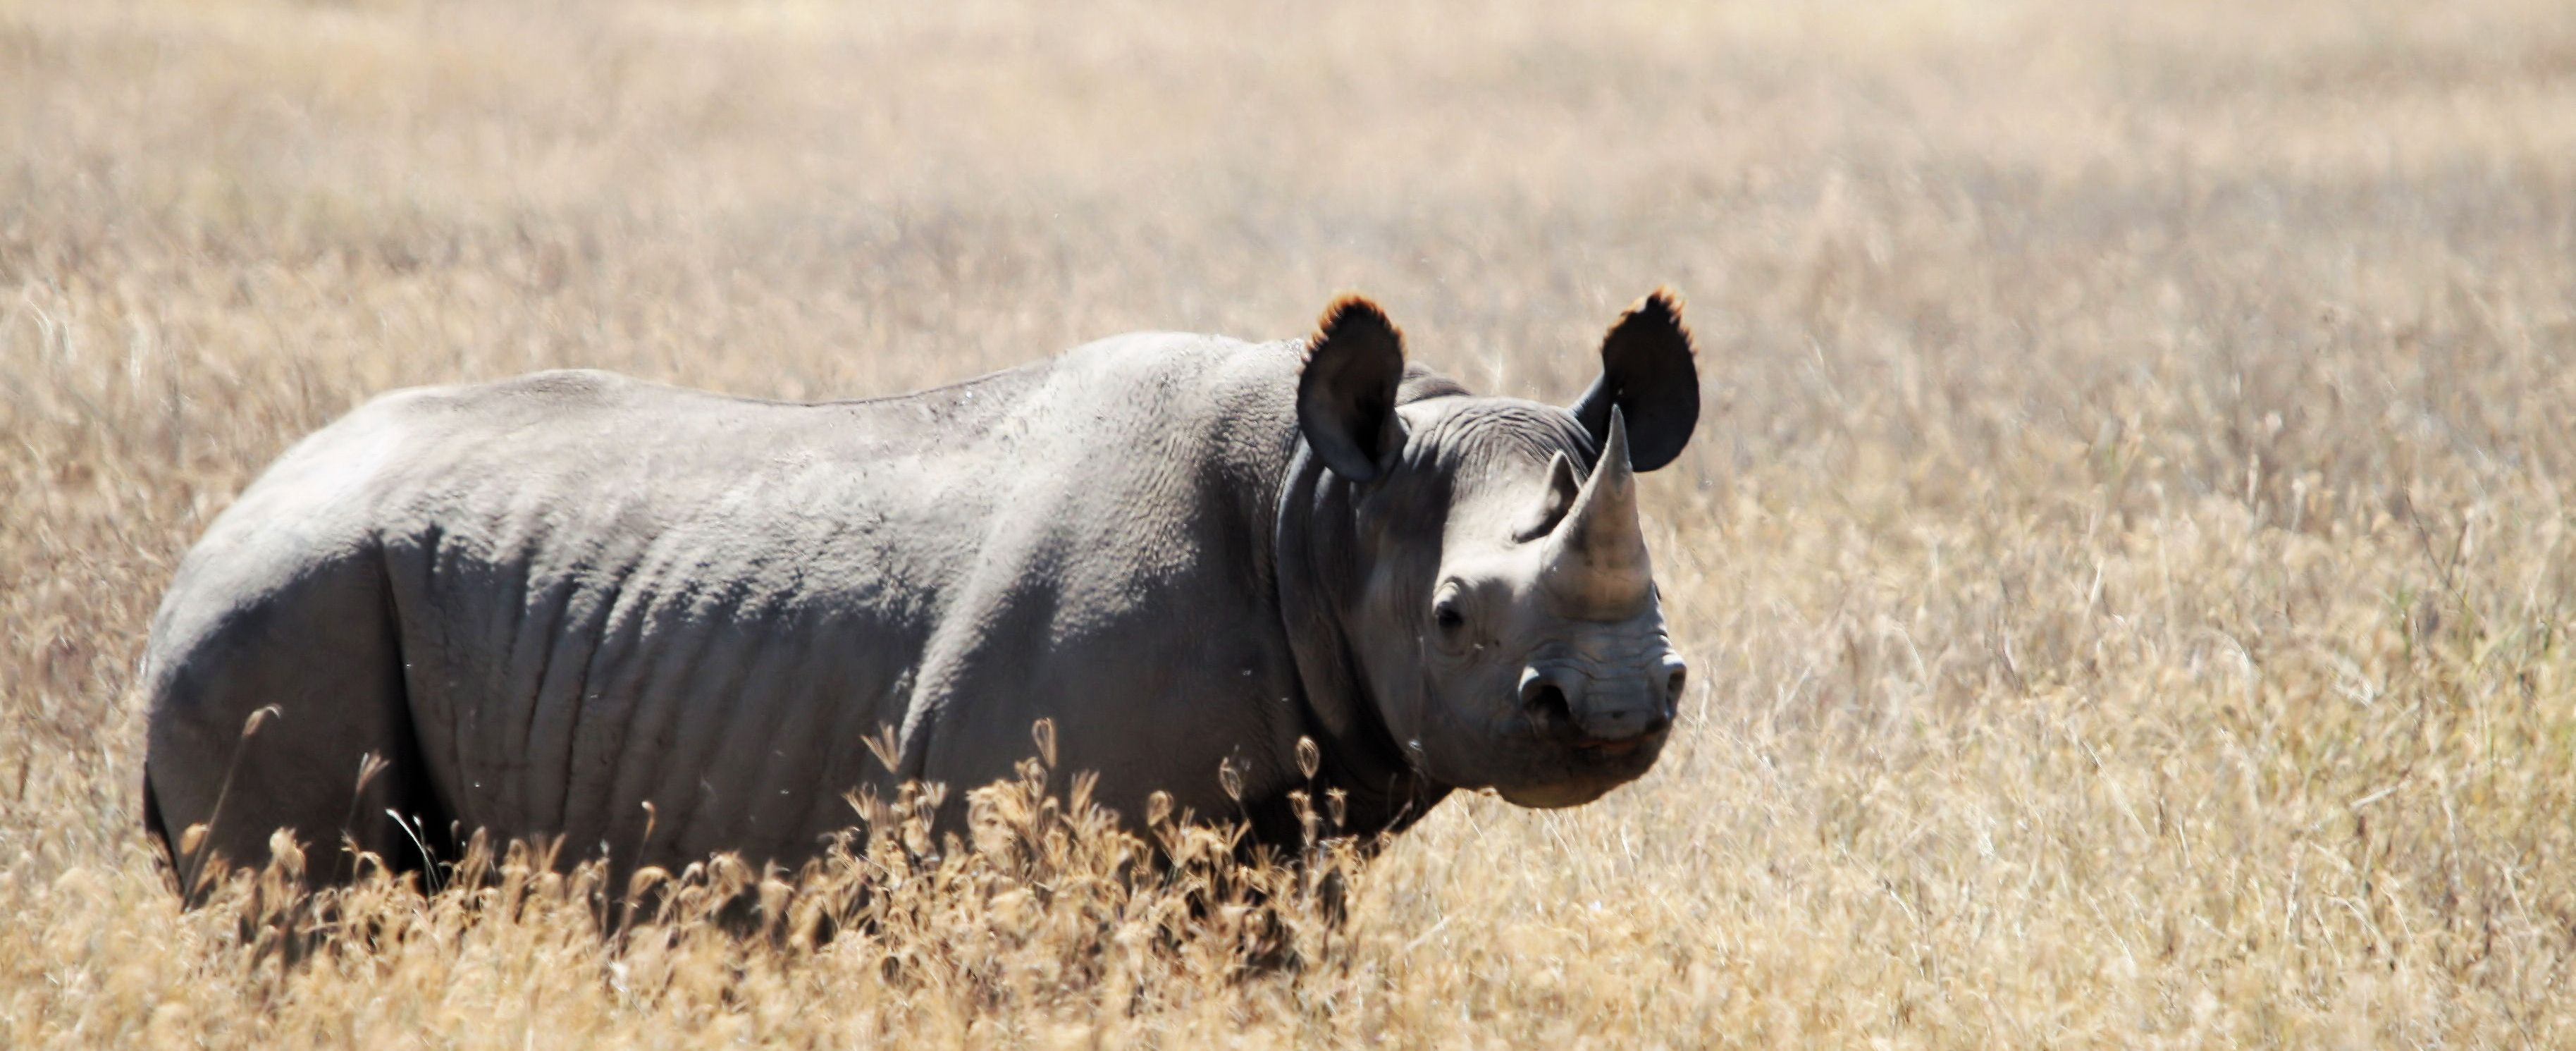 the dying specie of the black rhinoceros View the complete list of foreign species listed as endangered or threatened under the esa learn more about the listing process.